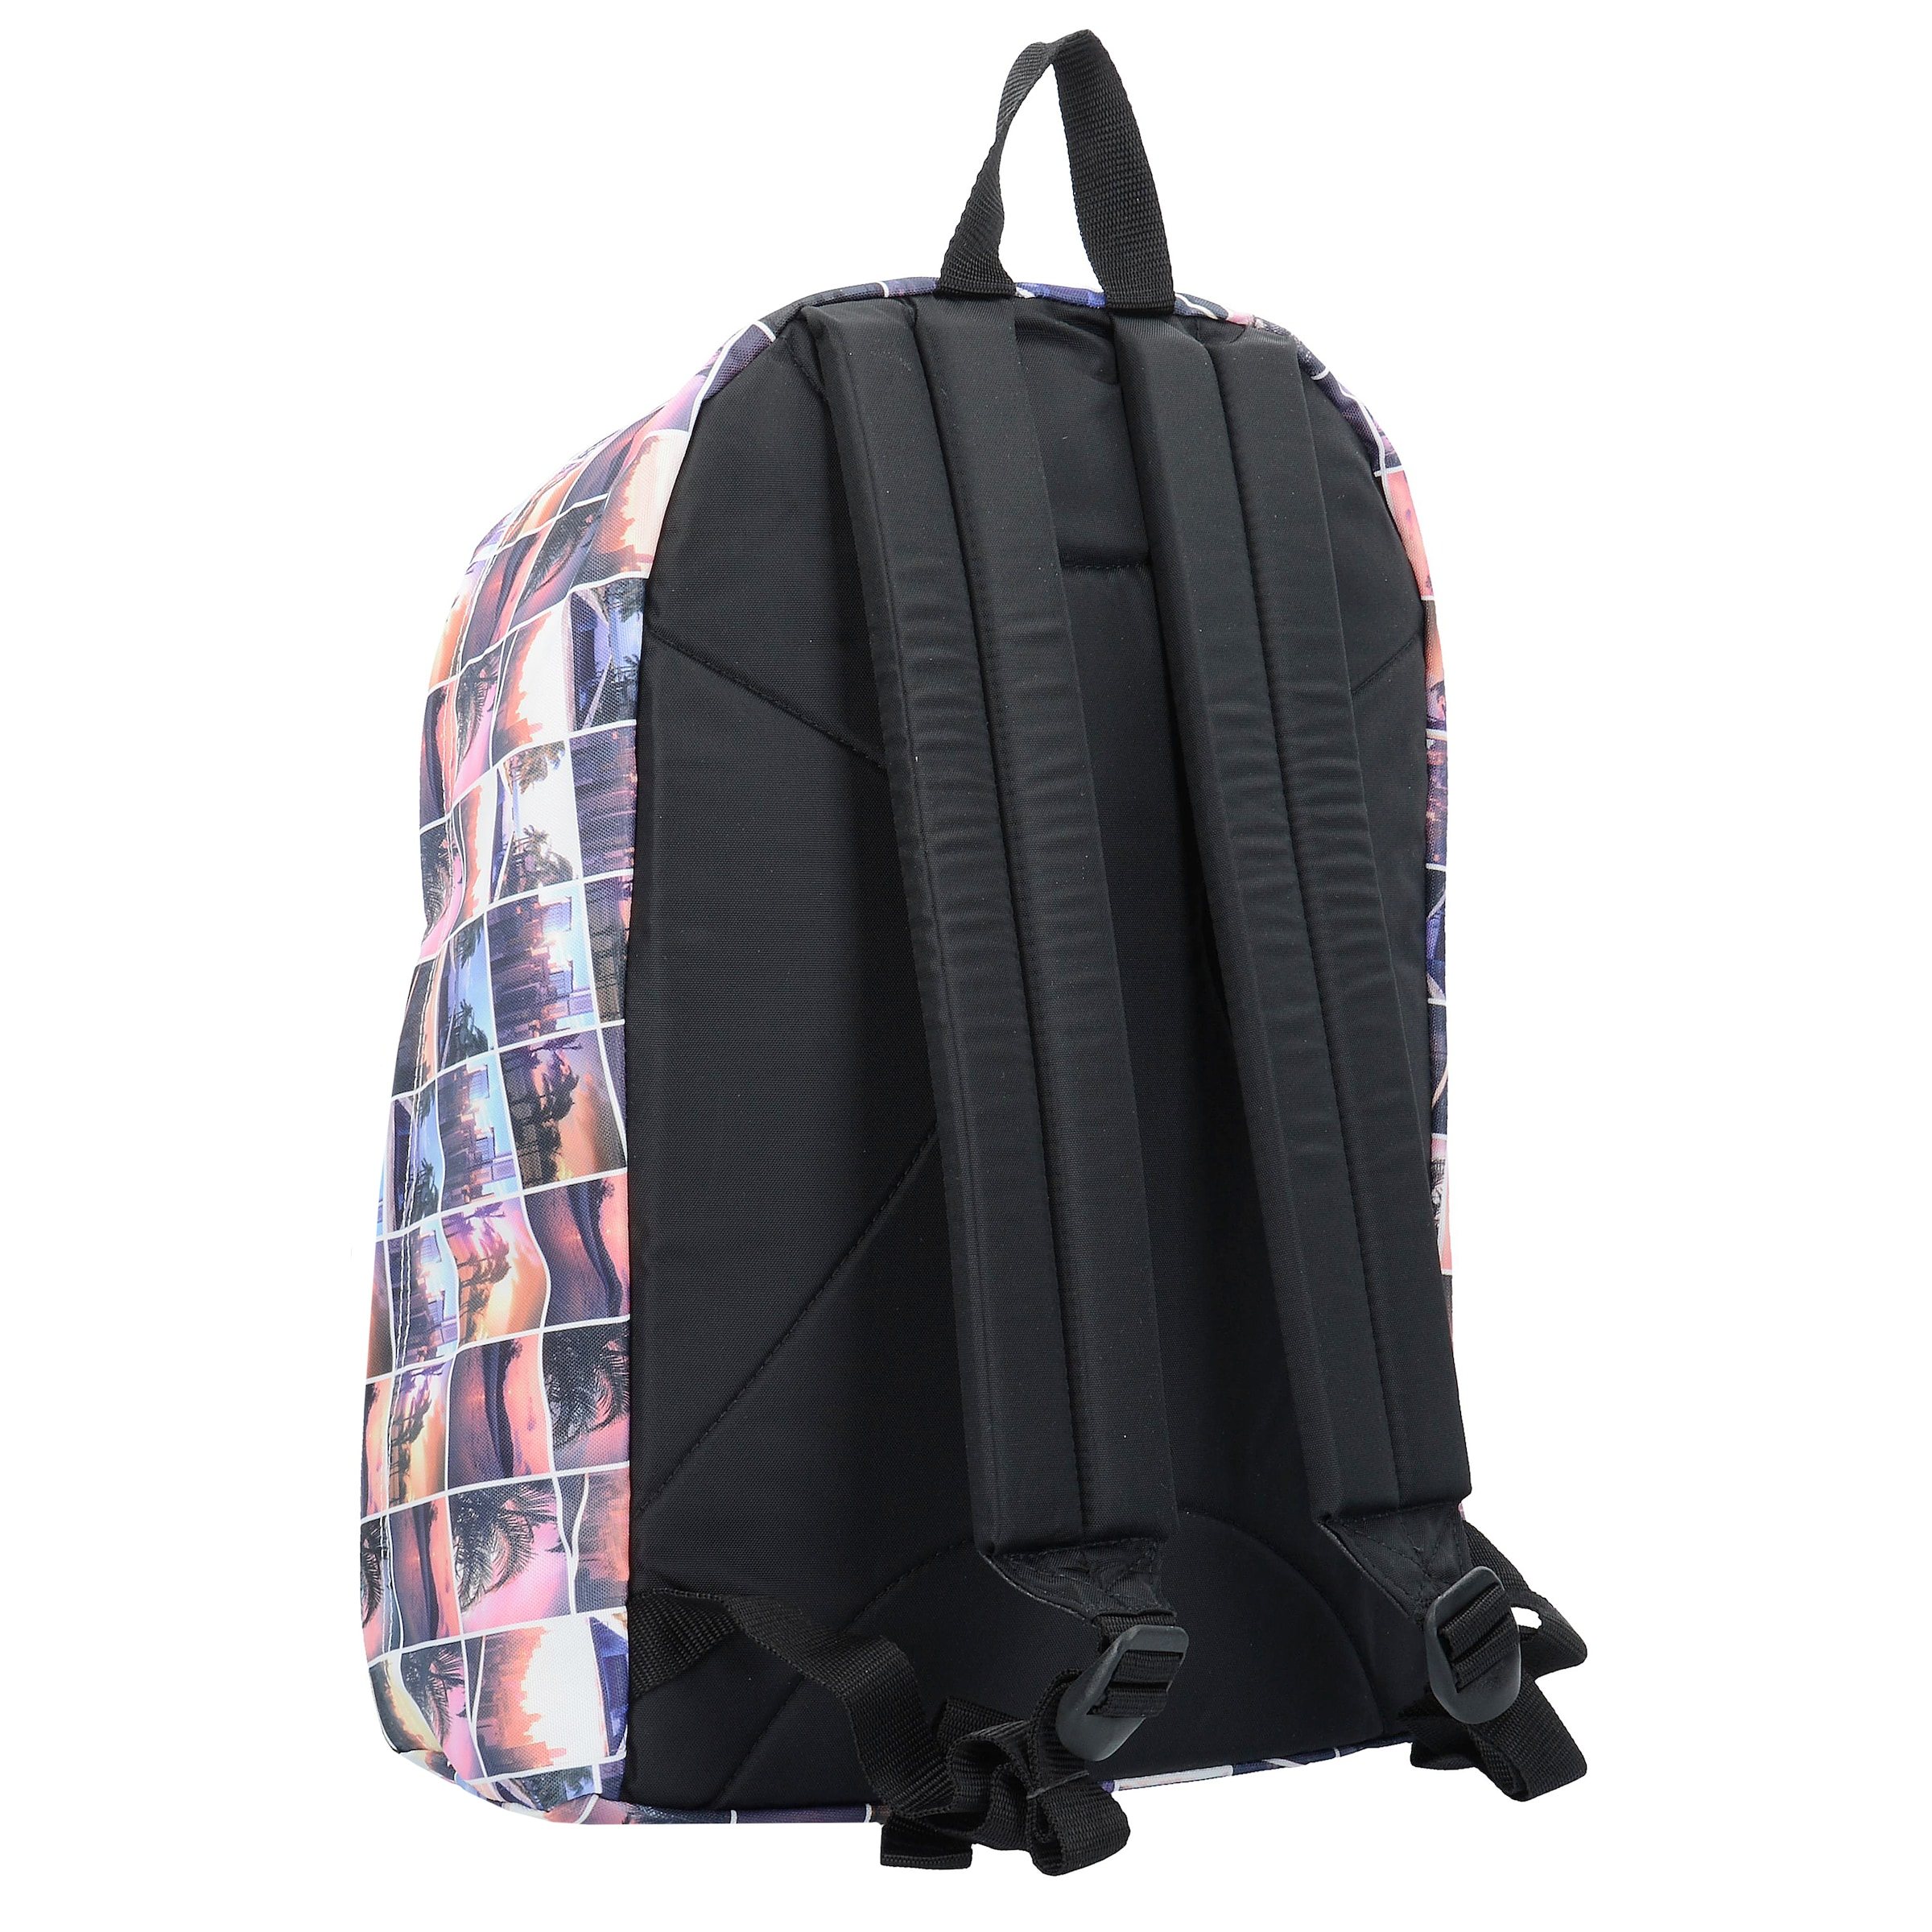 183 Rucksack Laptopfach Office EASTPAK 44 cm Out of Collection Authentic gRBRwUqXY